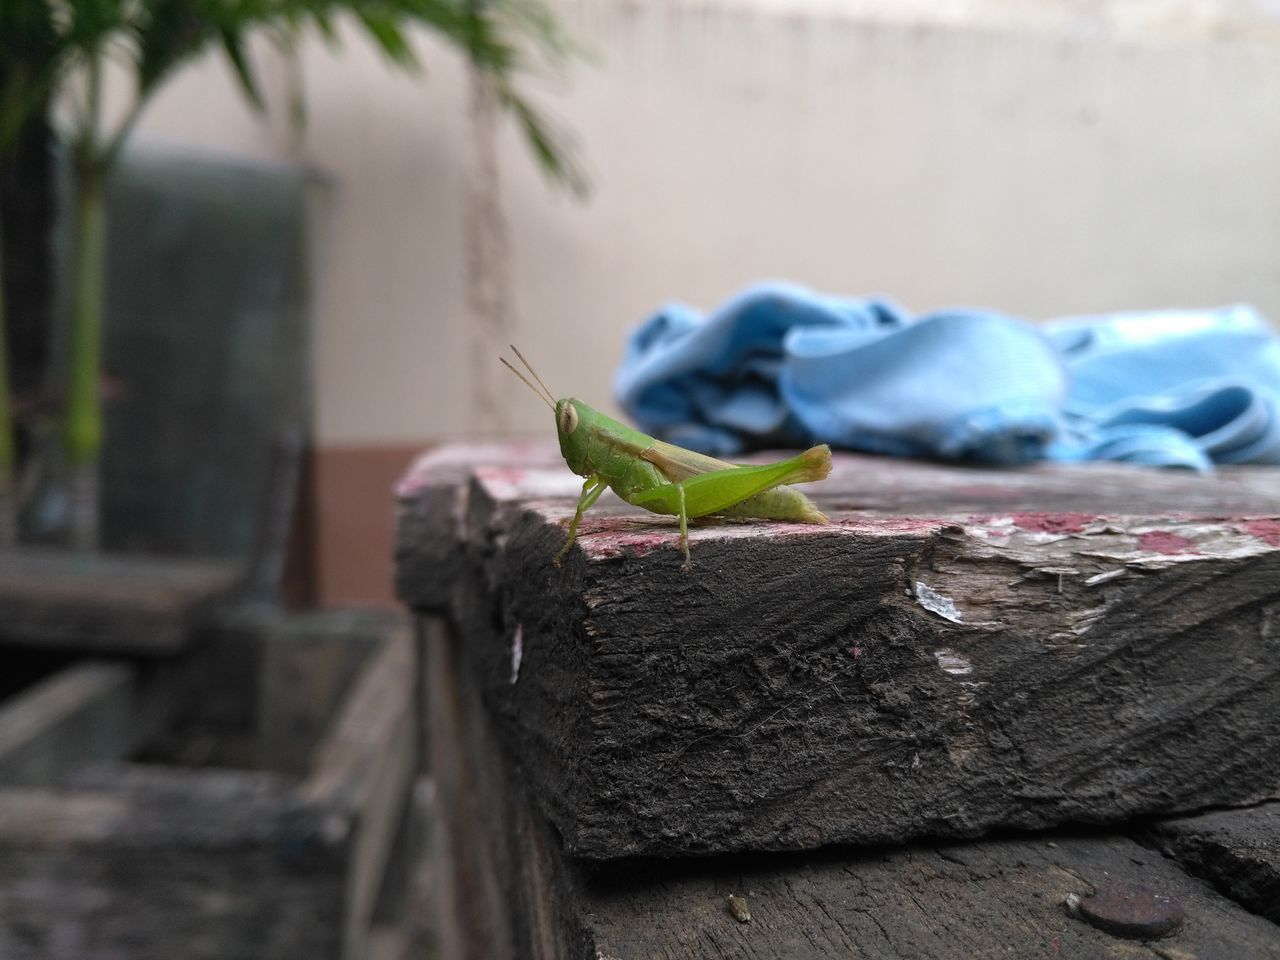 animals in the wild, one animal, animal wildlife, animal themes, day, focus on foreground, no people, close-up, outdoors, tree trunk, nature, green color, retaining wall, perching, tree, reptile